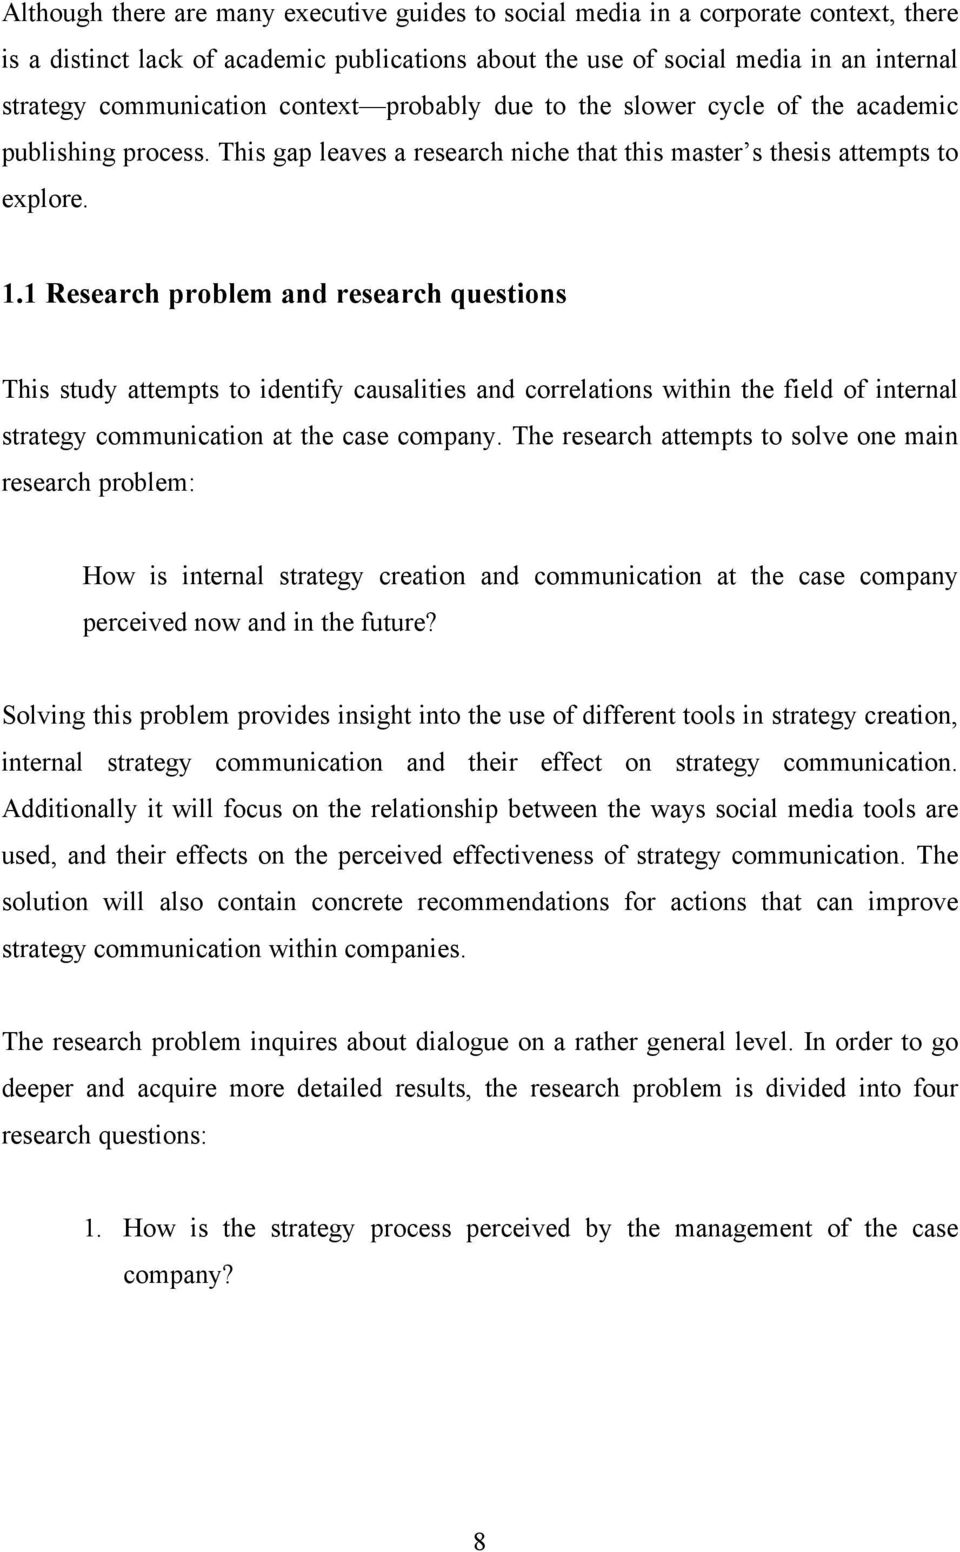 1 Research problem and research questions This study attempts to identify causalities and correlations within the field of internal strategy communication at the case company.